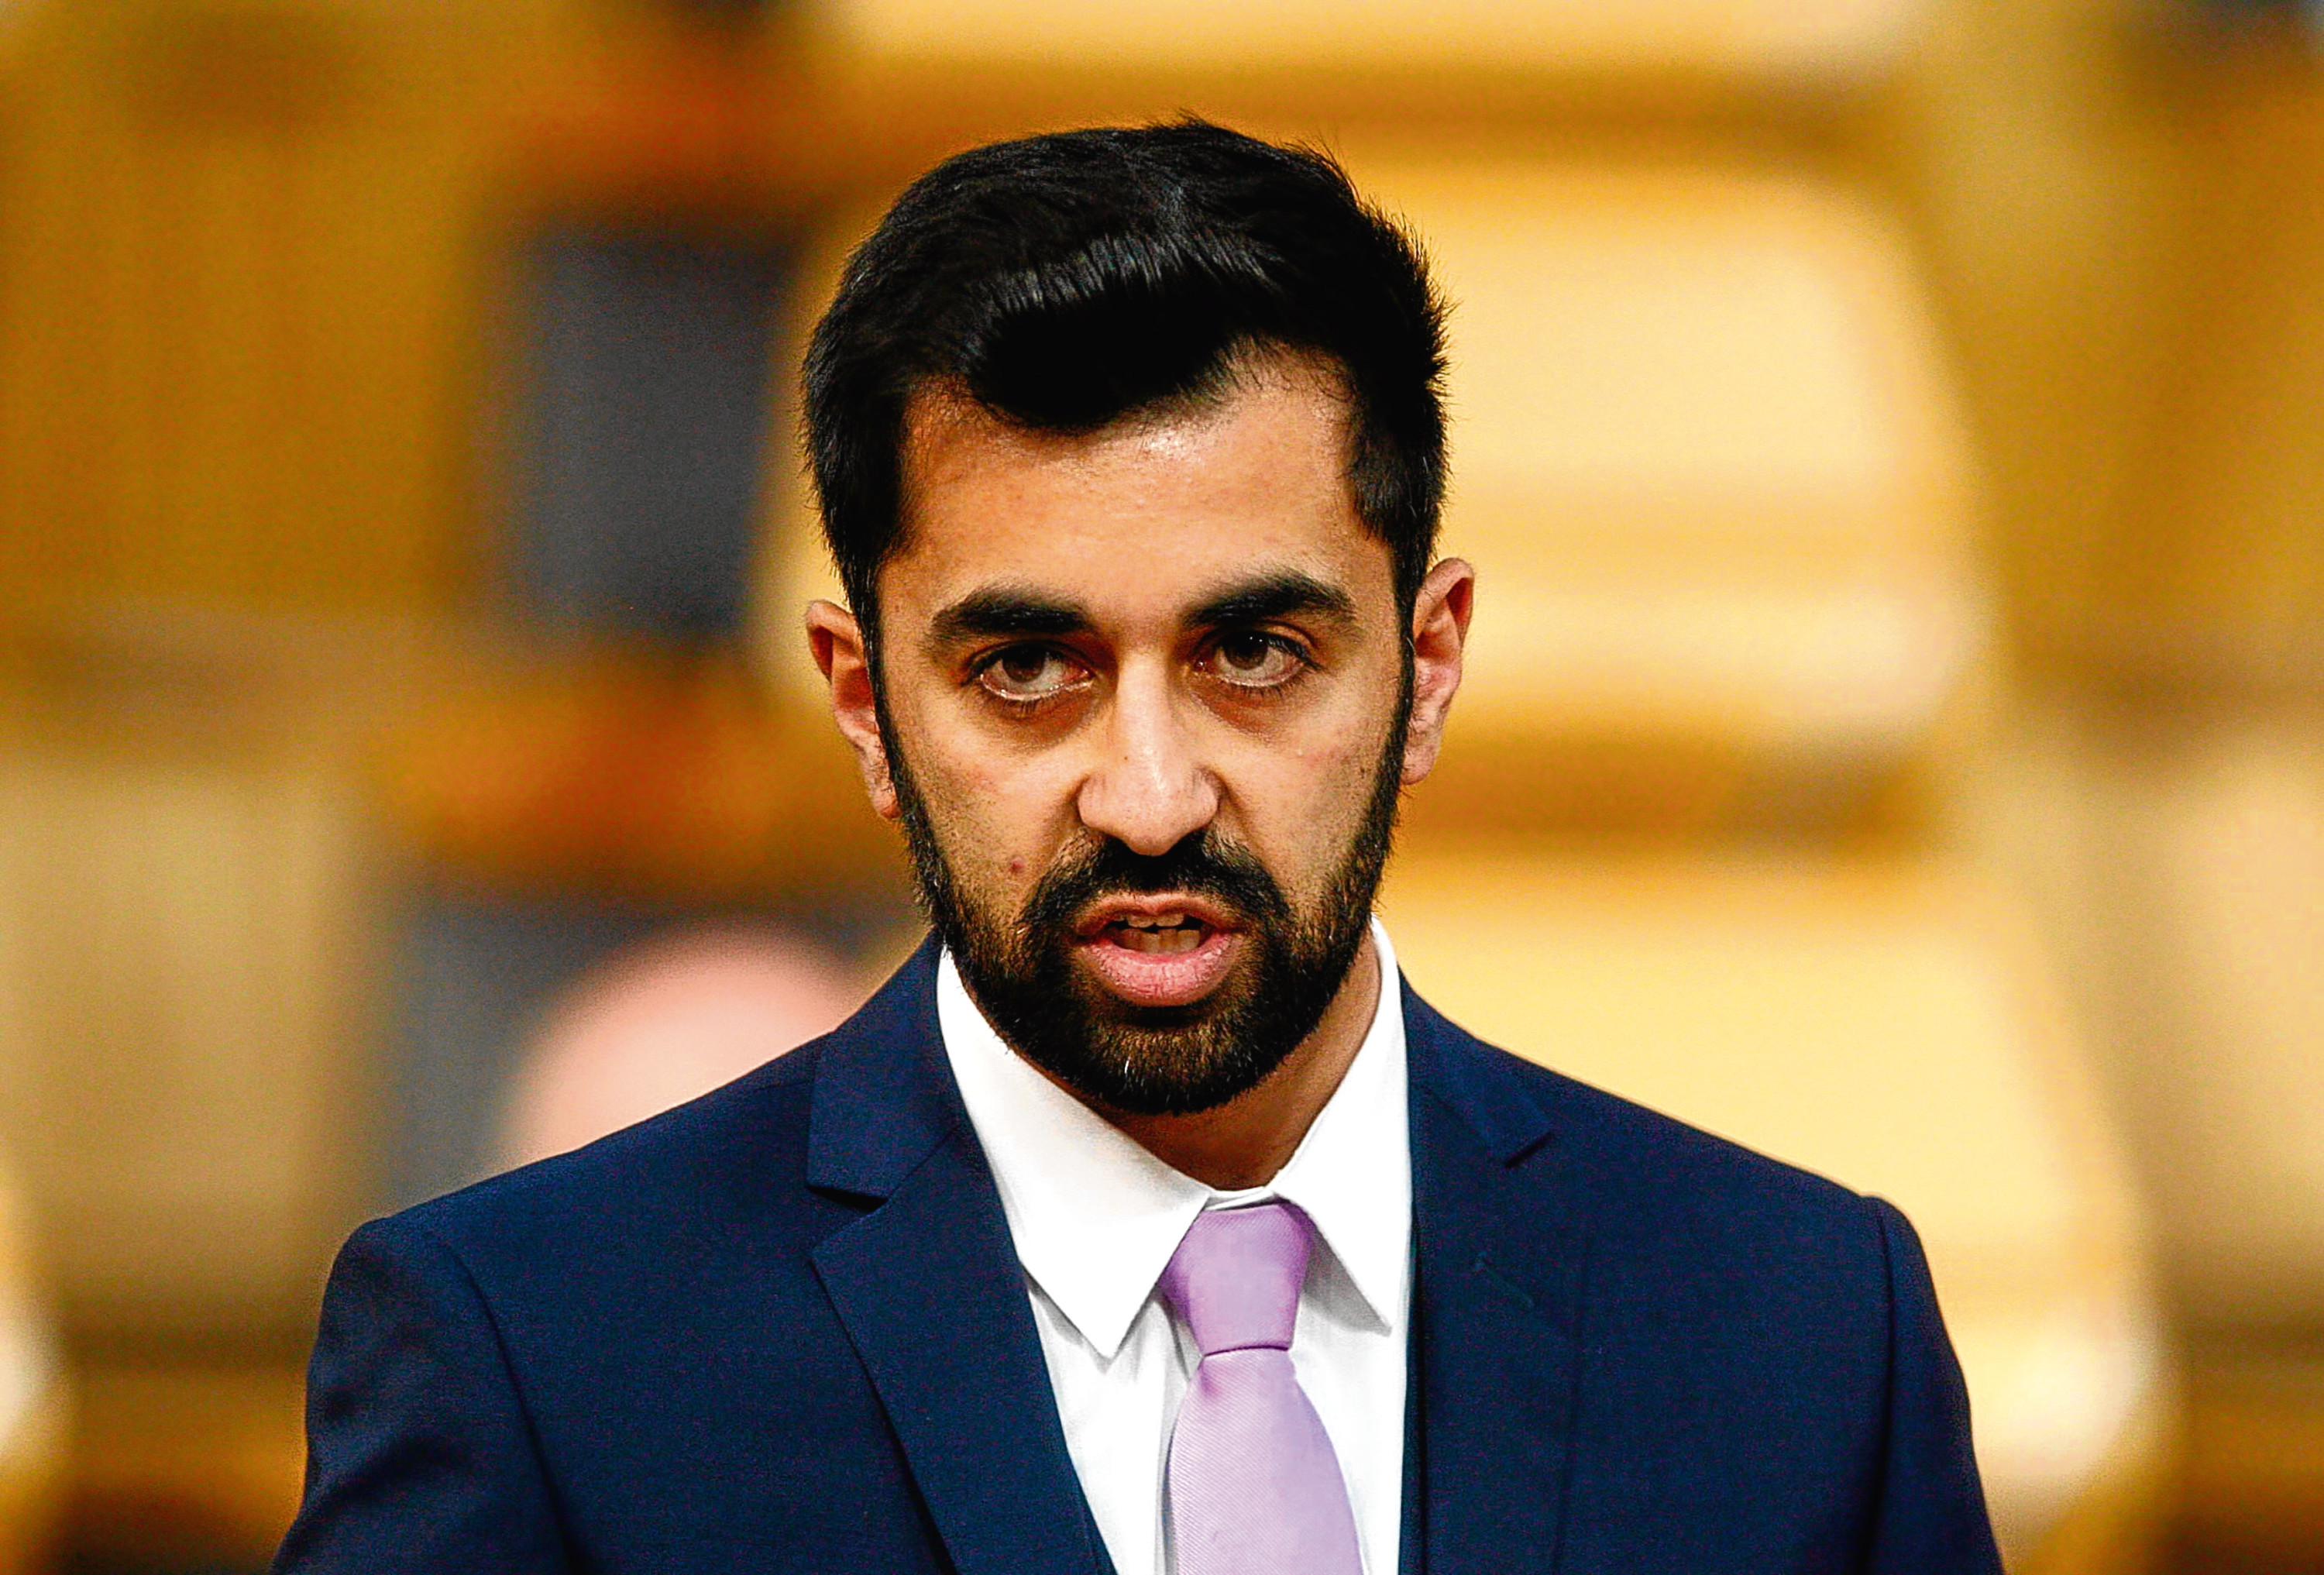 Humza Yousaf MSP, Minister for Transport and the Islands (Andrew Cowan/Scottish Parliament)